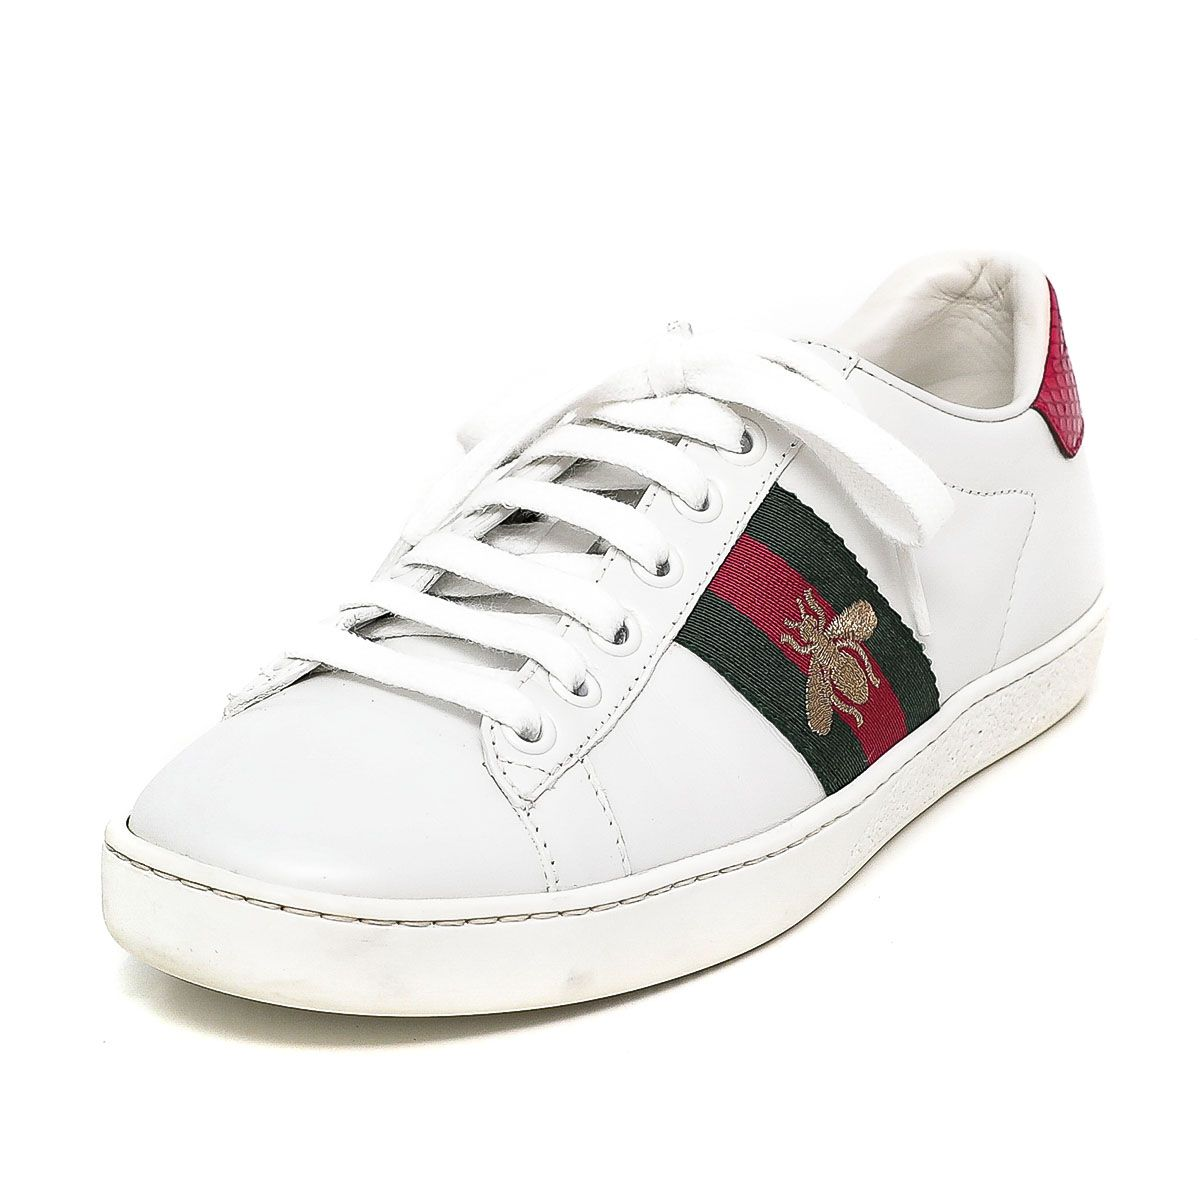 Ace Embroidered Bee Sneakers 36